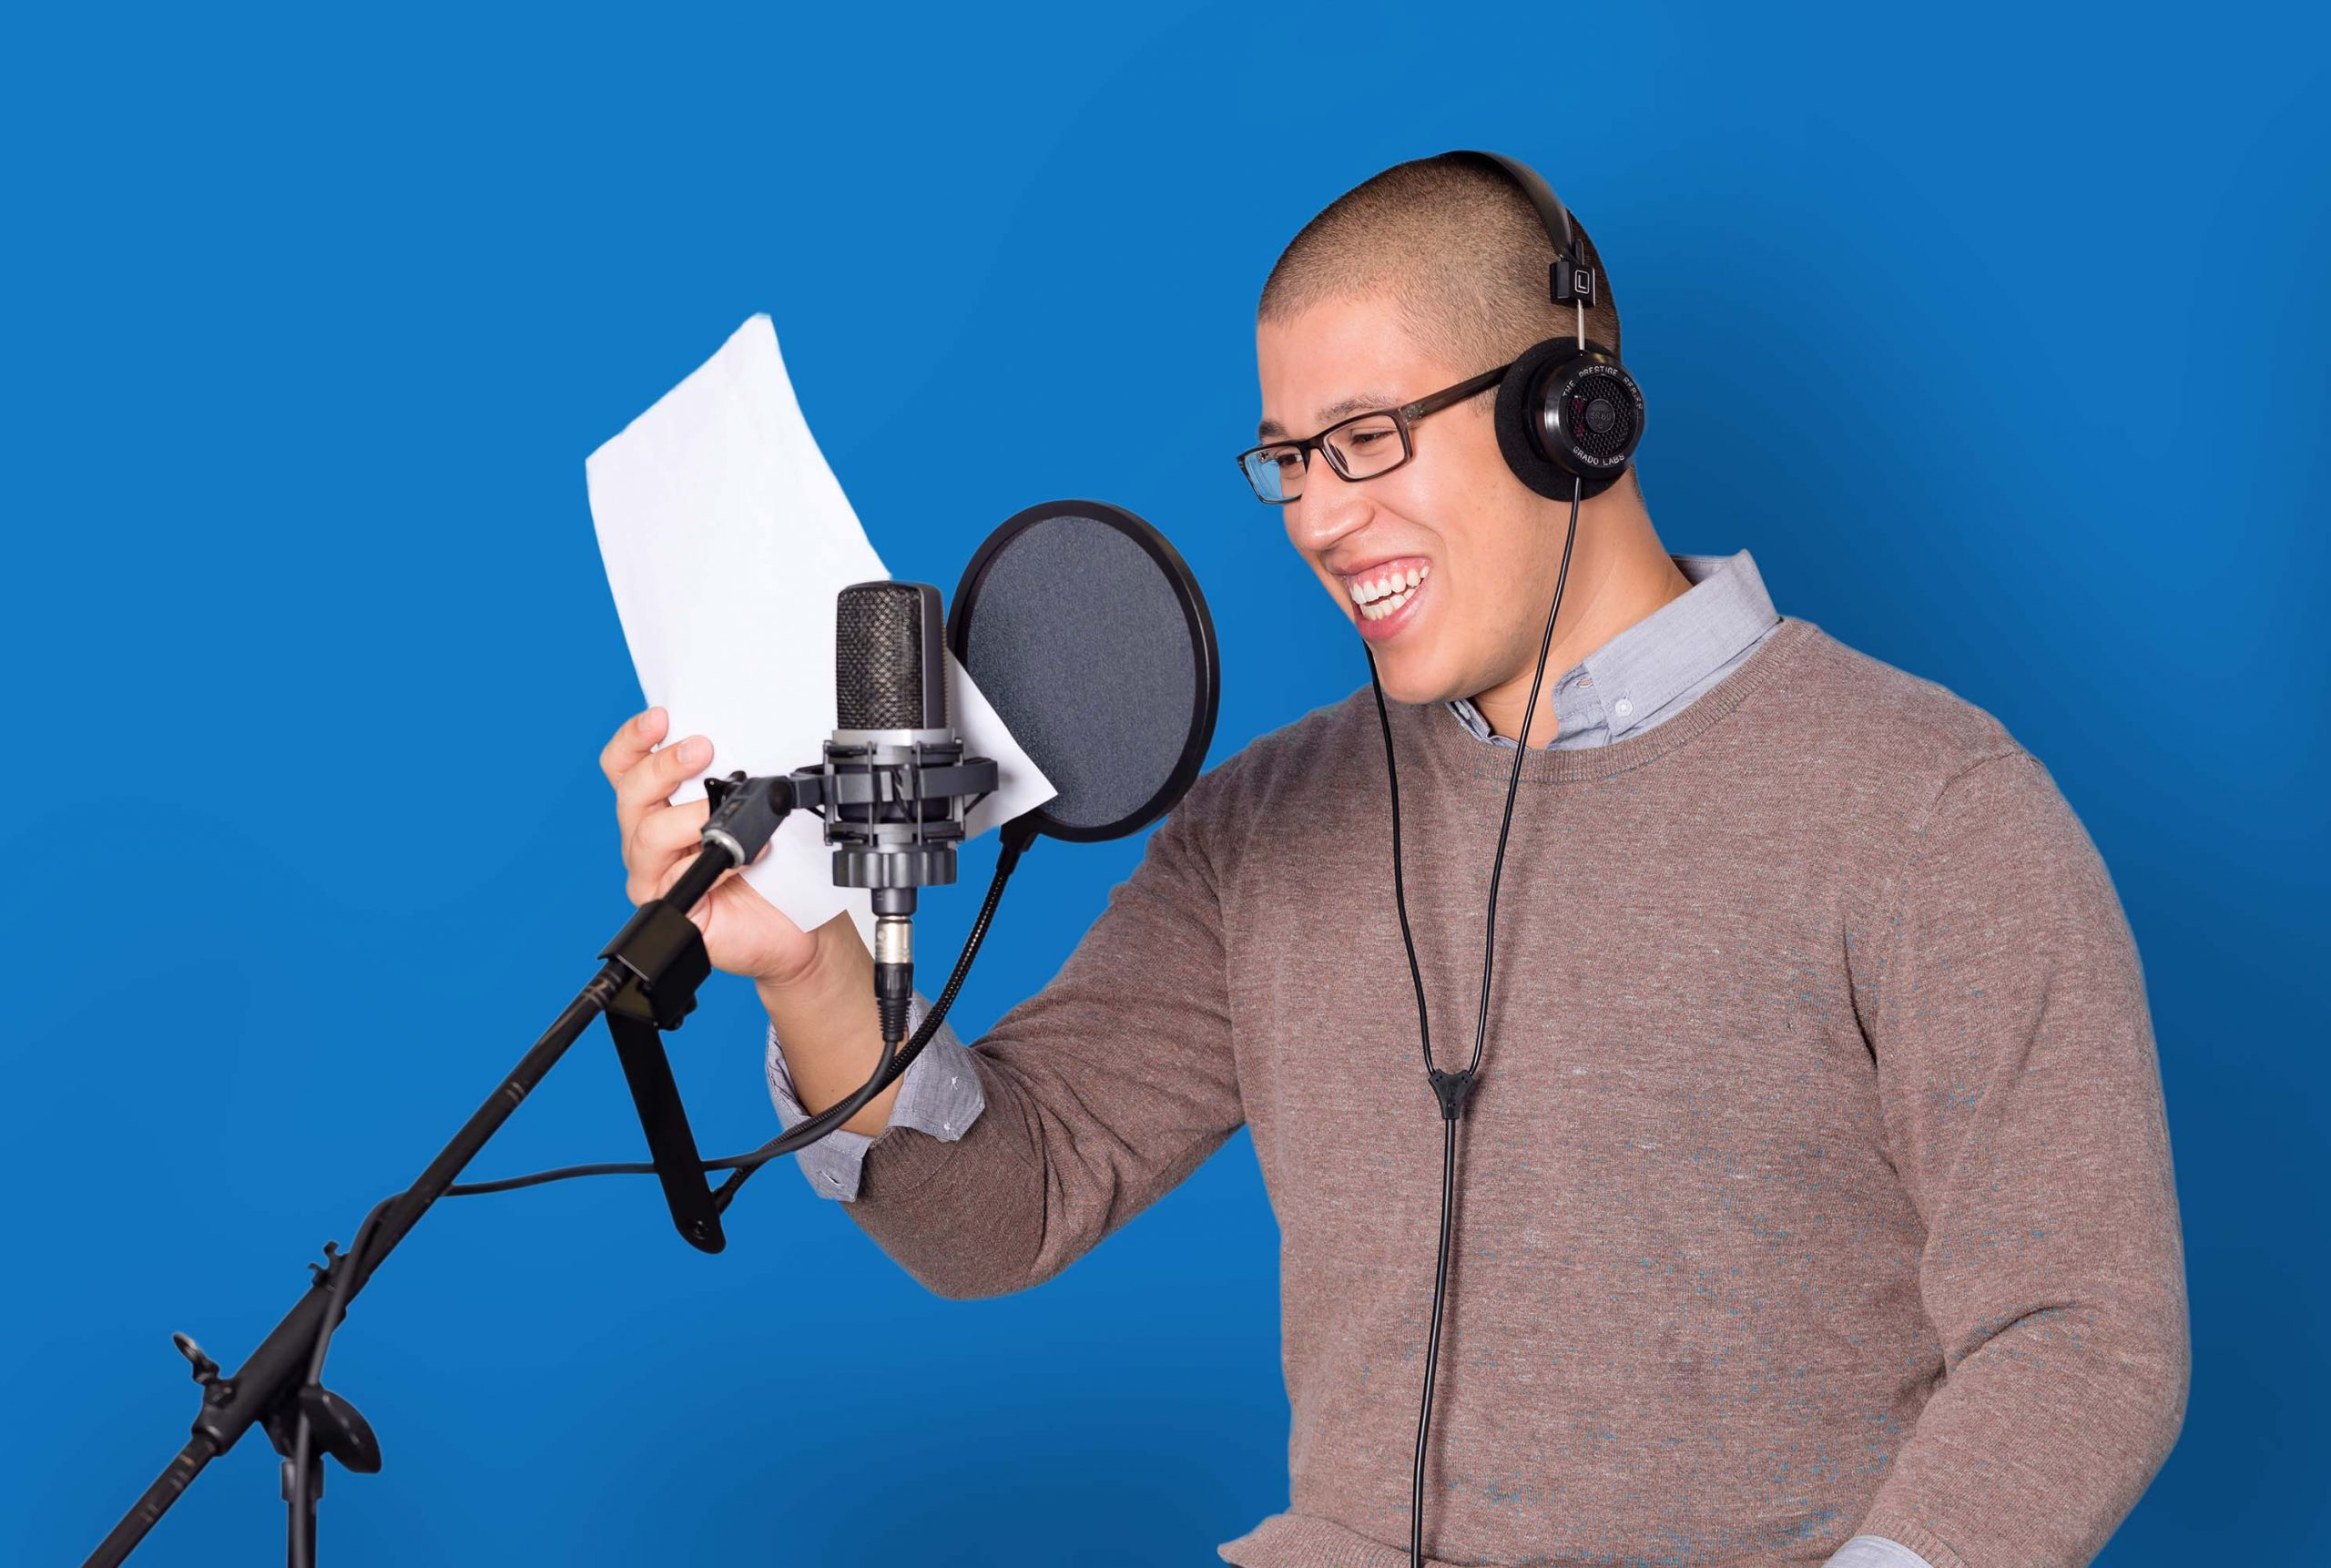 A voice actor sitting in front of a microphone and reading from a script against a blue background.